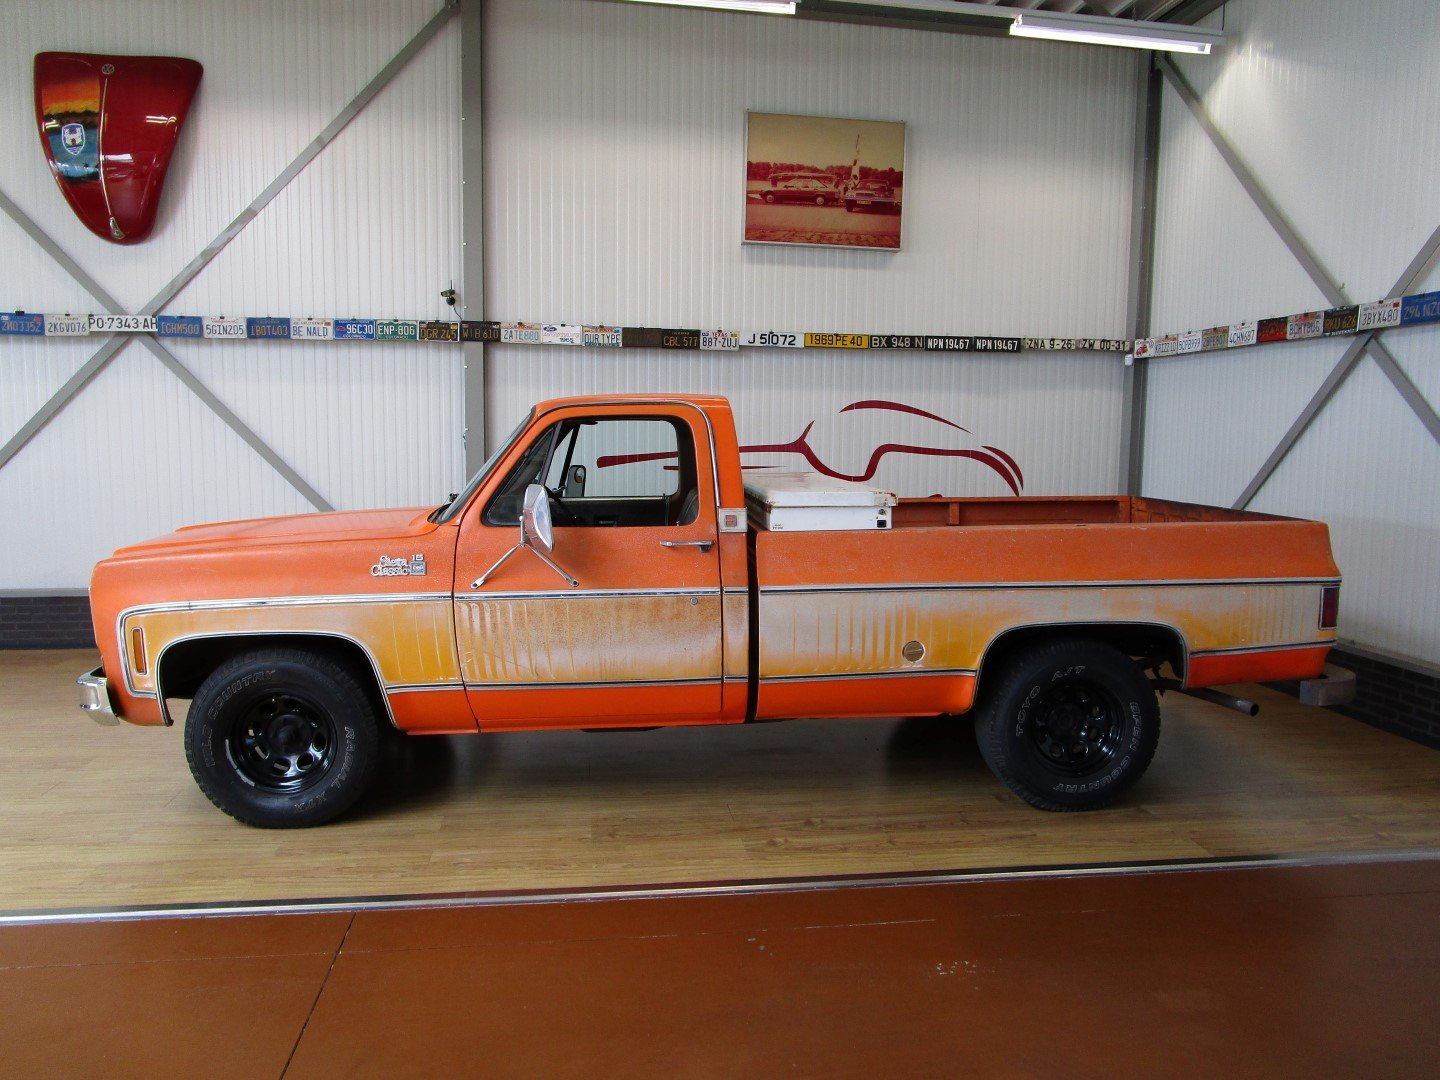 1976 GMC 15 Sierra Classic 350CU V8 Longbed Pick Up For Sale (picture 2 of 6)